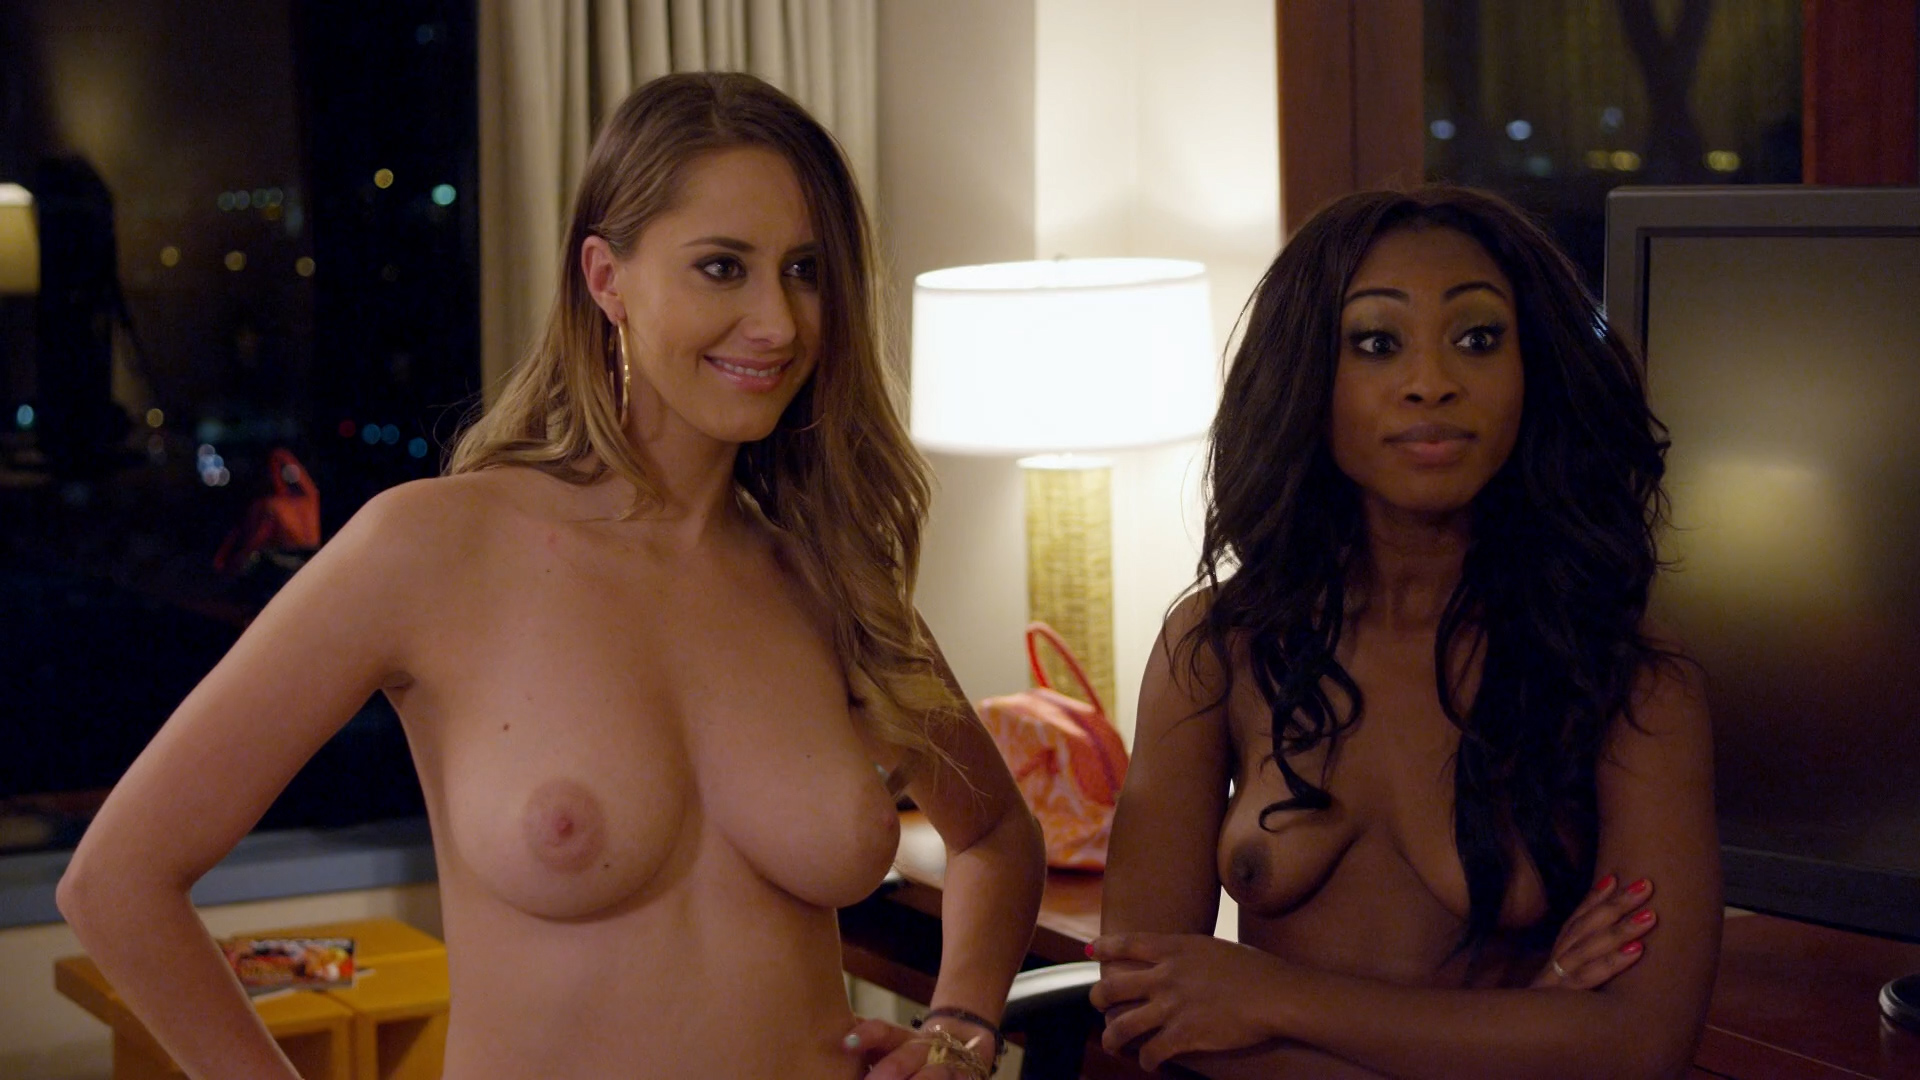 Heather Paige Cohn nude sex Samantha Stewart nude Megan Albertus nude sex and others all nude - Bachelor Night (2014) hd1080p (5)